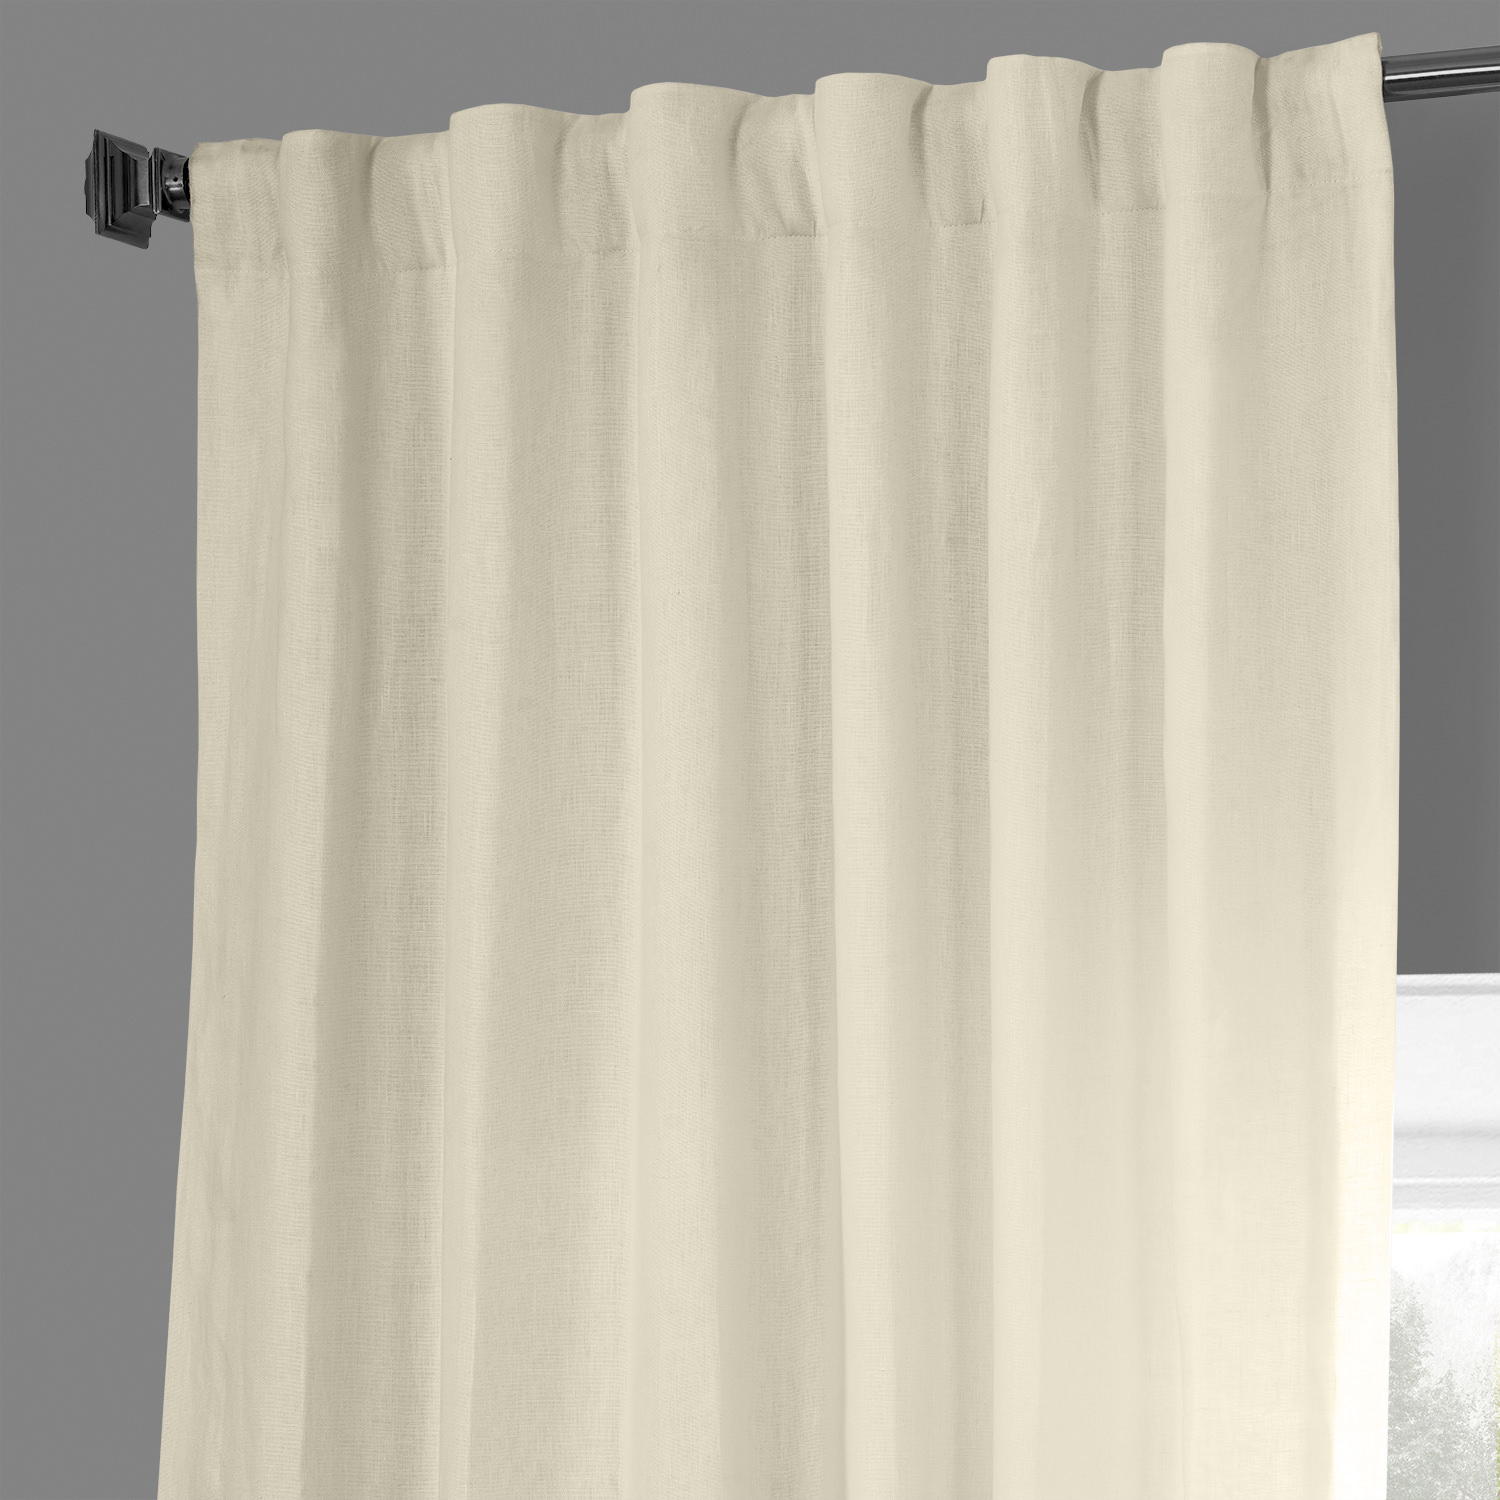 Buy Ancient Ivory French Linen Curtain Half Price Drapes